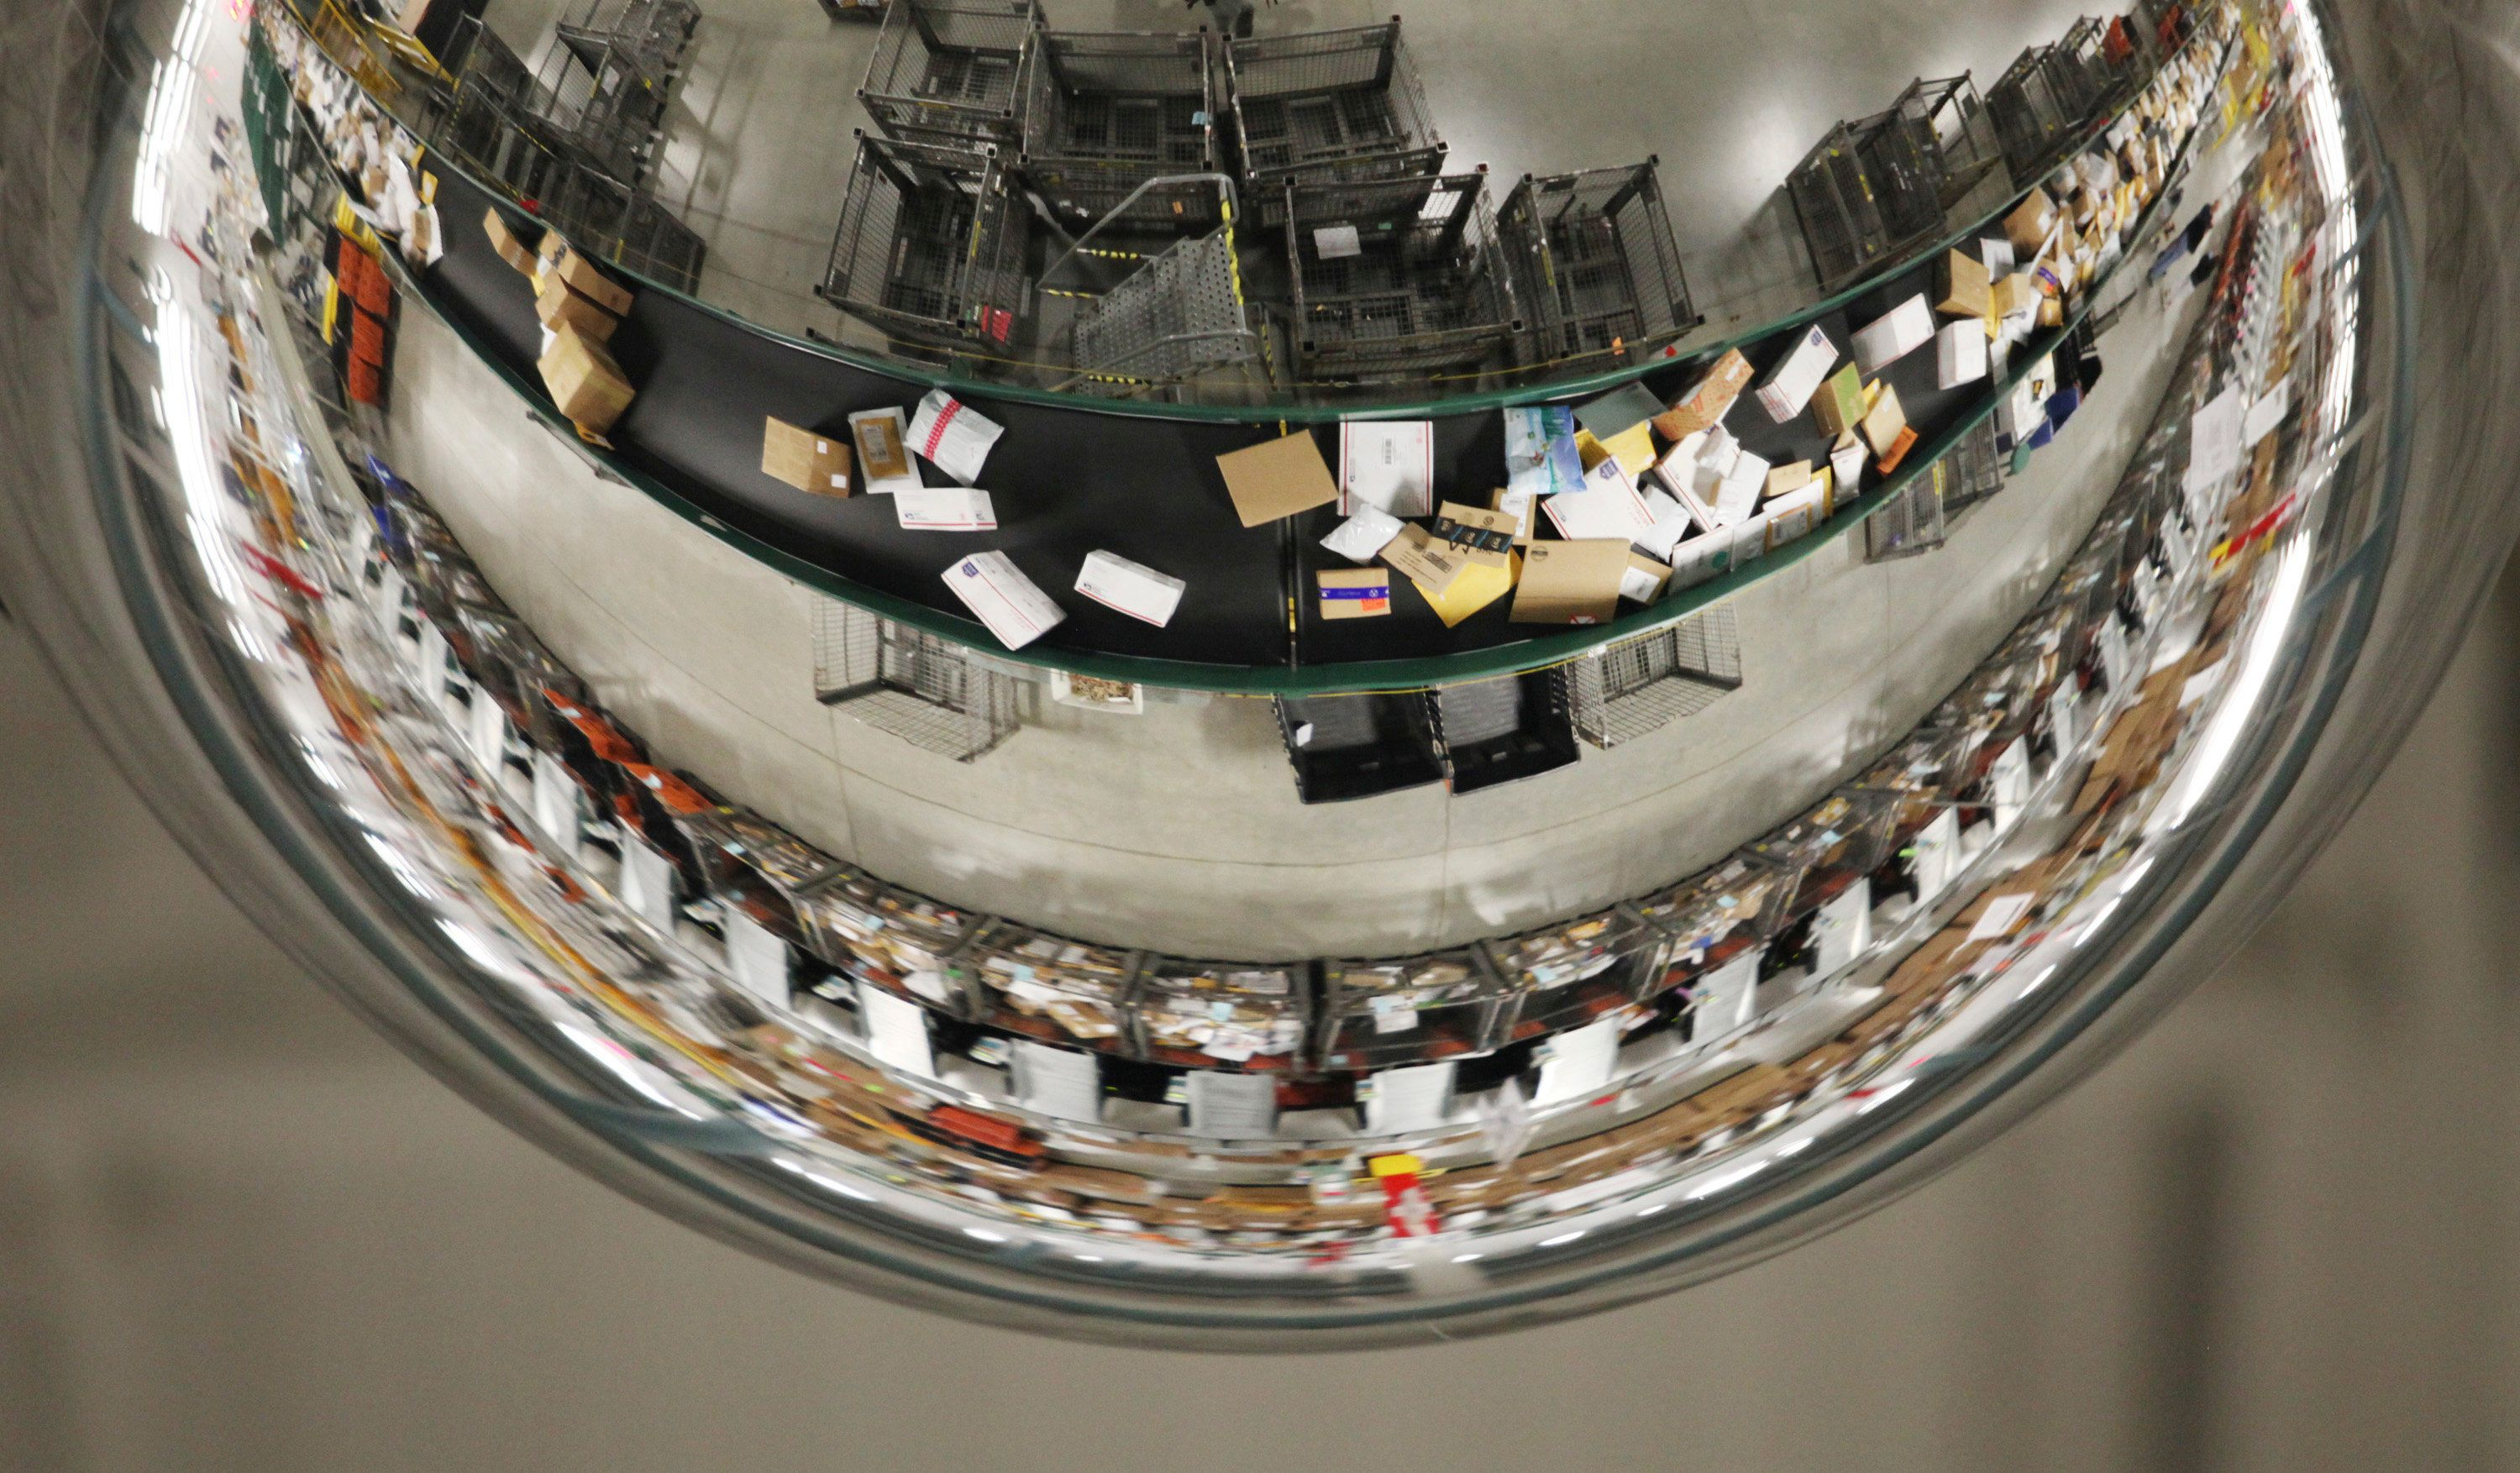 SCARBOROUGH, ME - DECEMBER 18: A domed mirror reflects packages moving along a conveyor belt Thursday, Dec. 18, 2014 at the USPS sorting facility in Scarborough, Maine. The mirror allows for workers to see that the belt is functioning properly and there are no packages jammed. (Photo by Joel Page/Portland Press Herald via Getty Images)